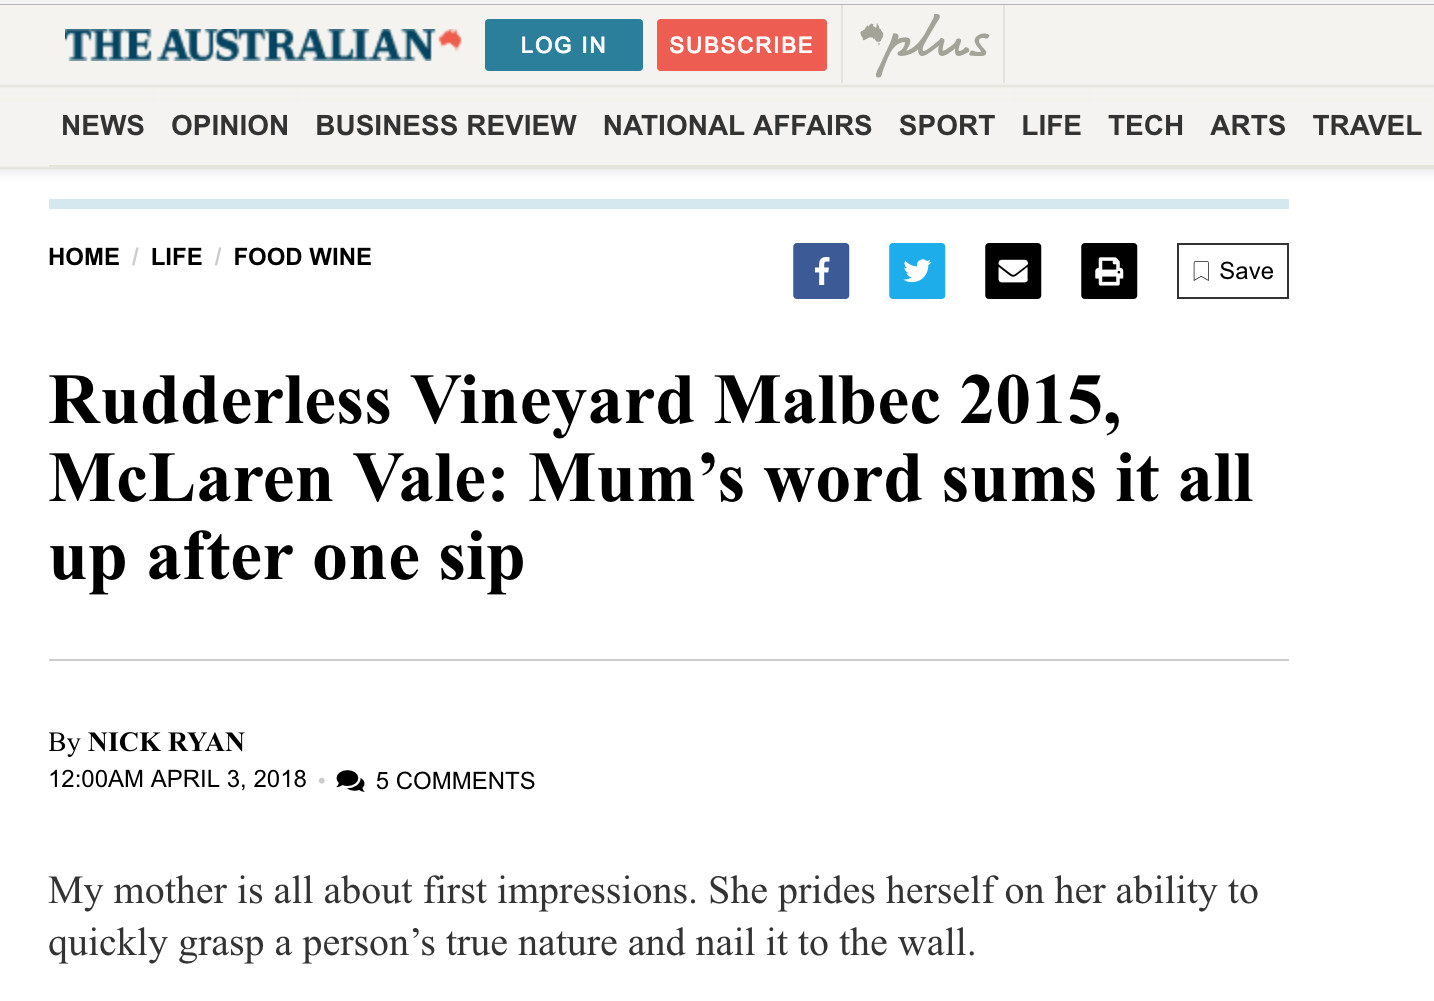 Rudderless Vineyard Malbec 2015, McLaren Vale: Mum's word sums it all up after one sip